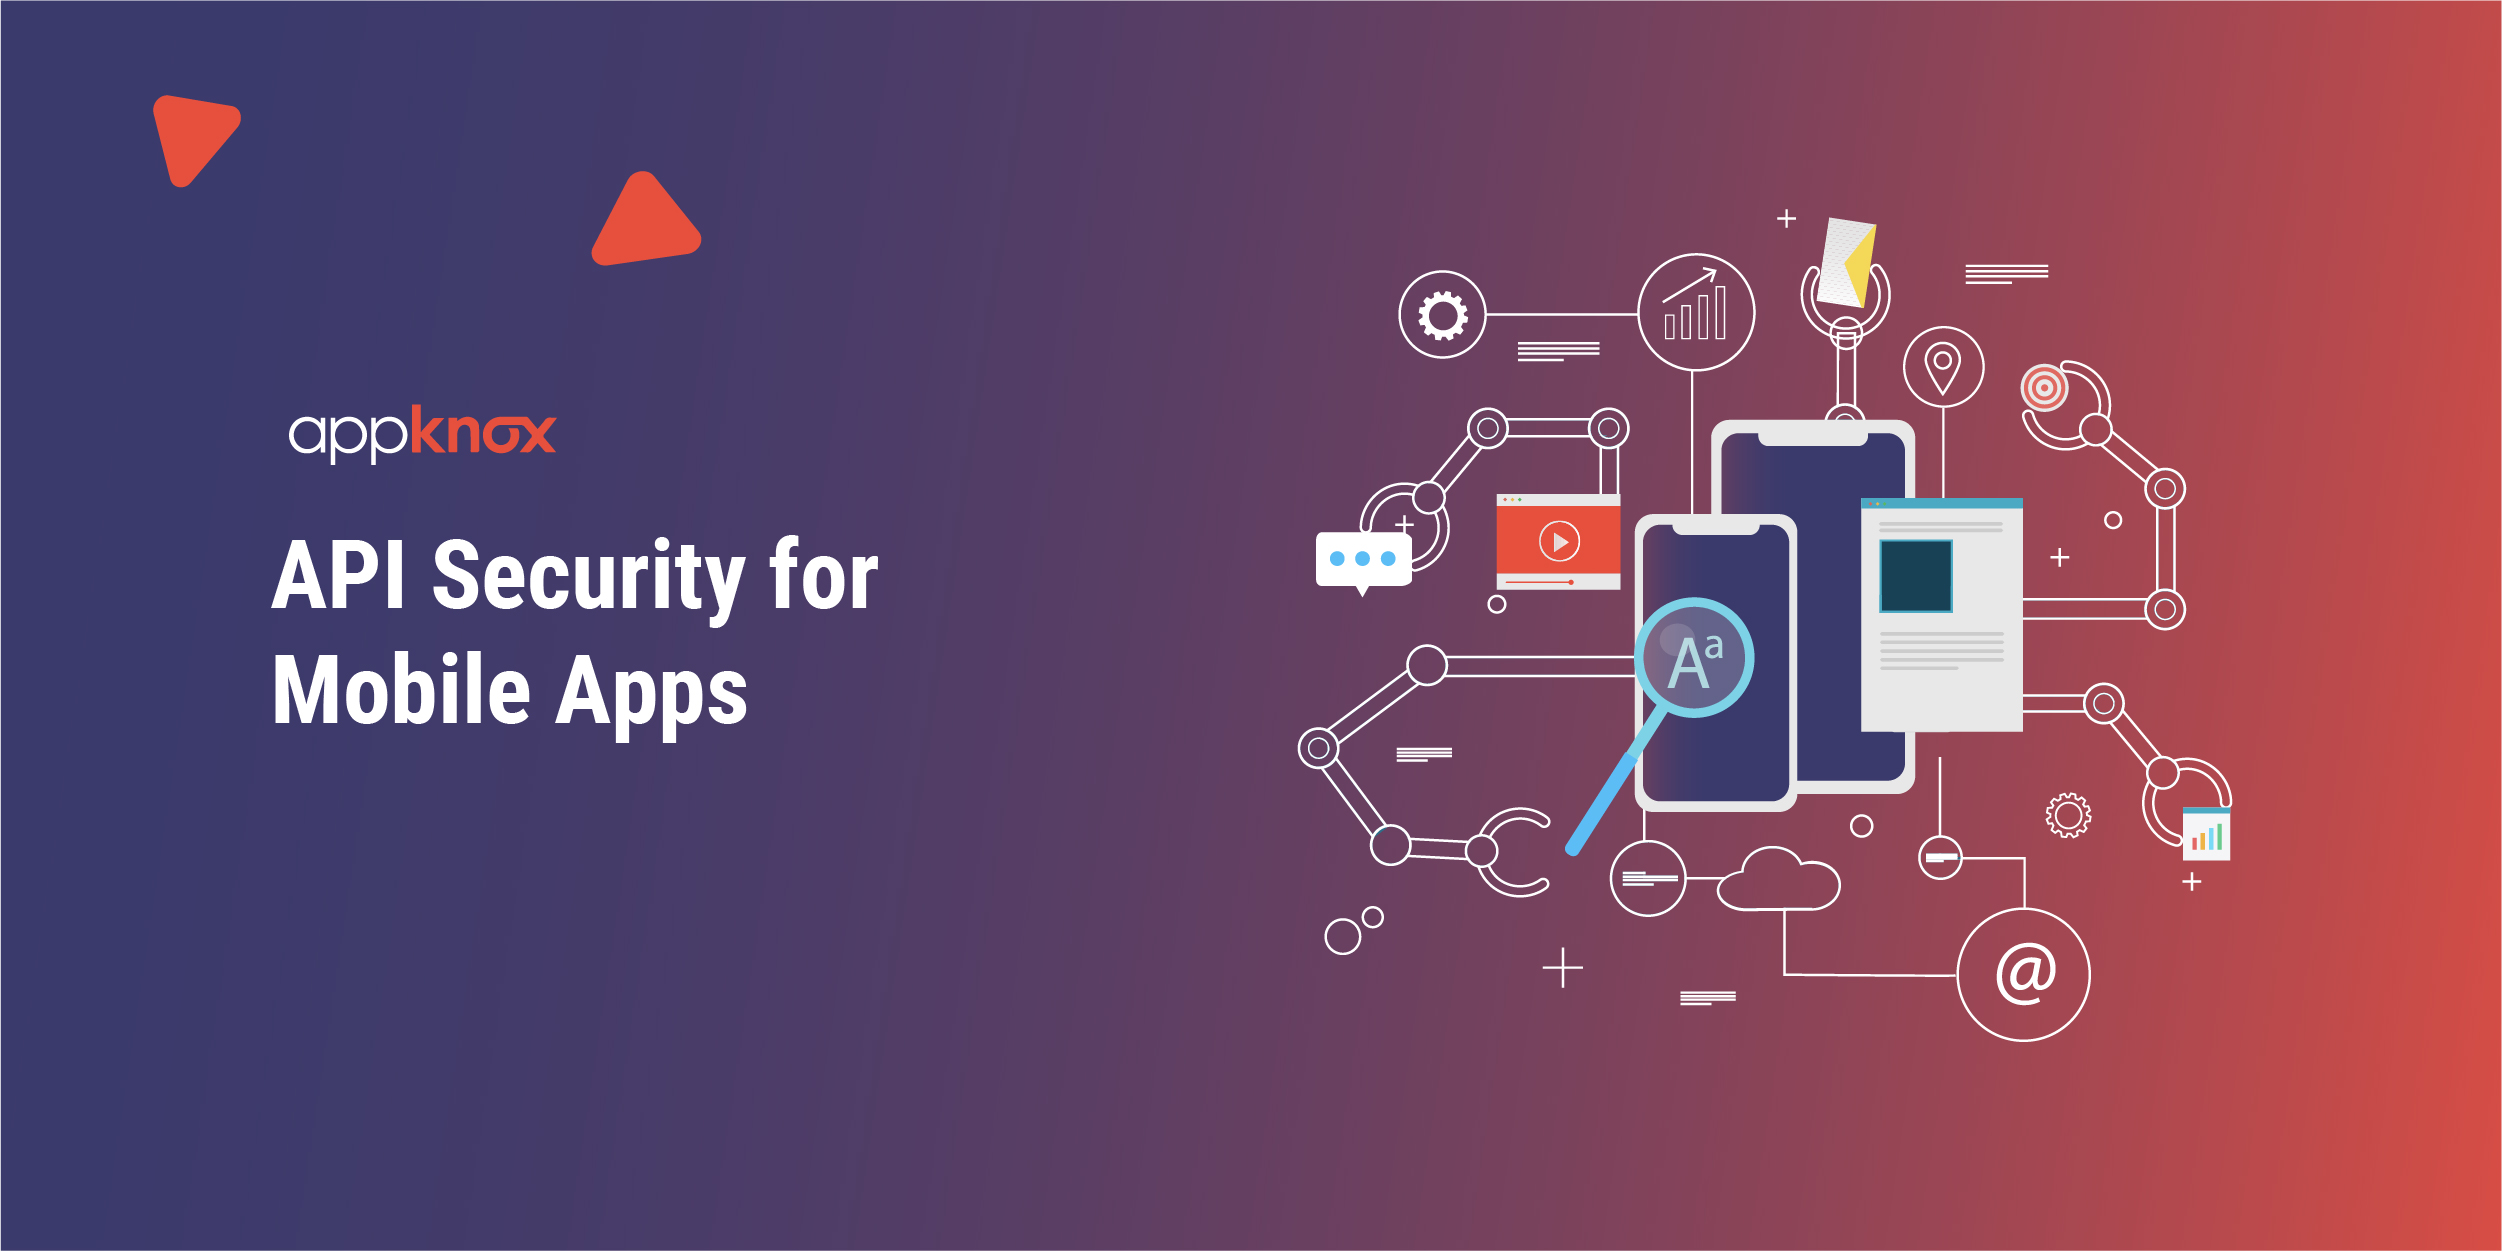 API Security for Mobile Apps